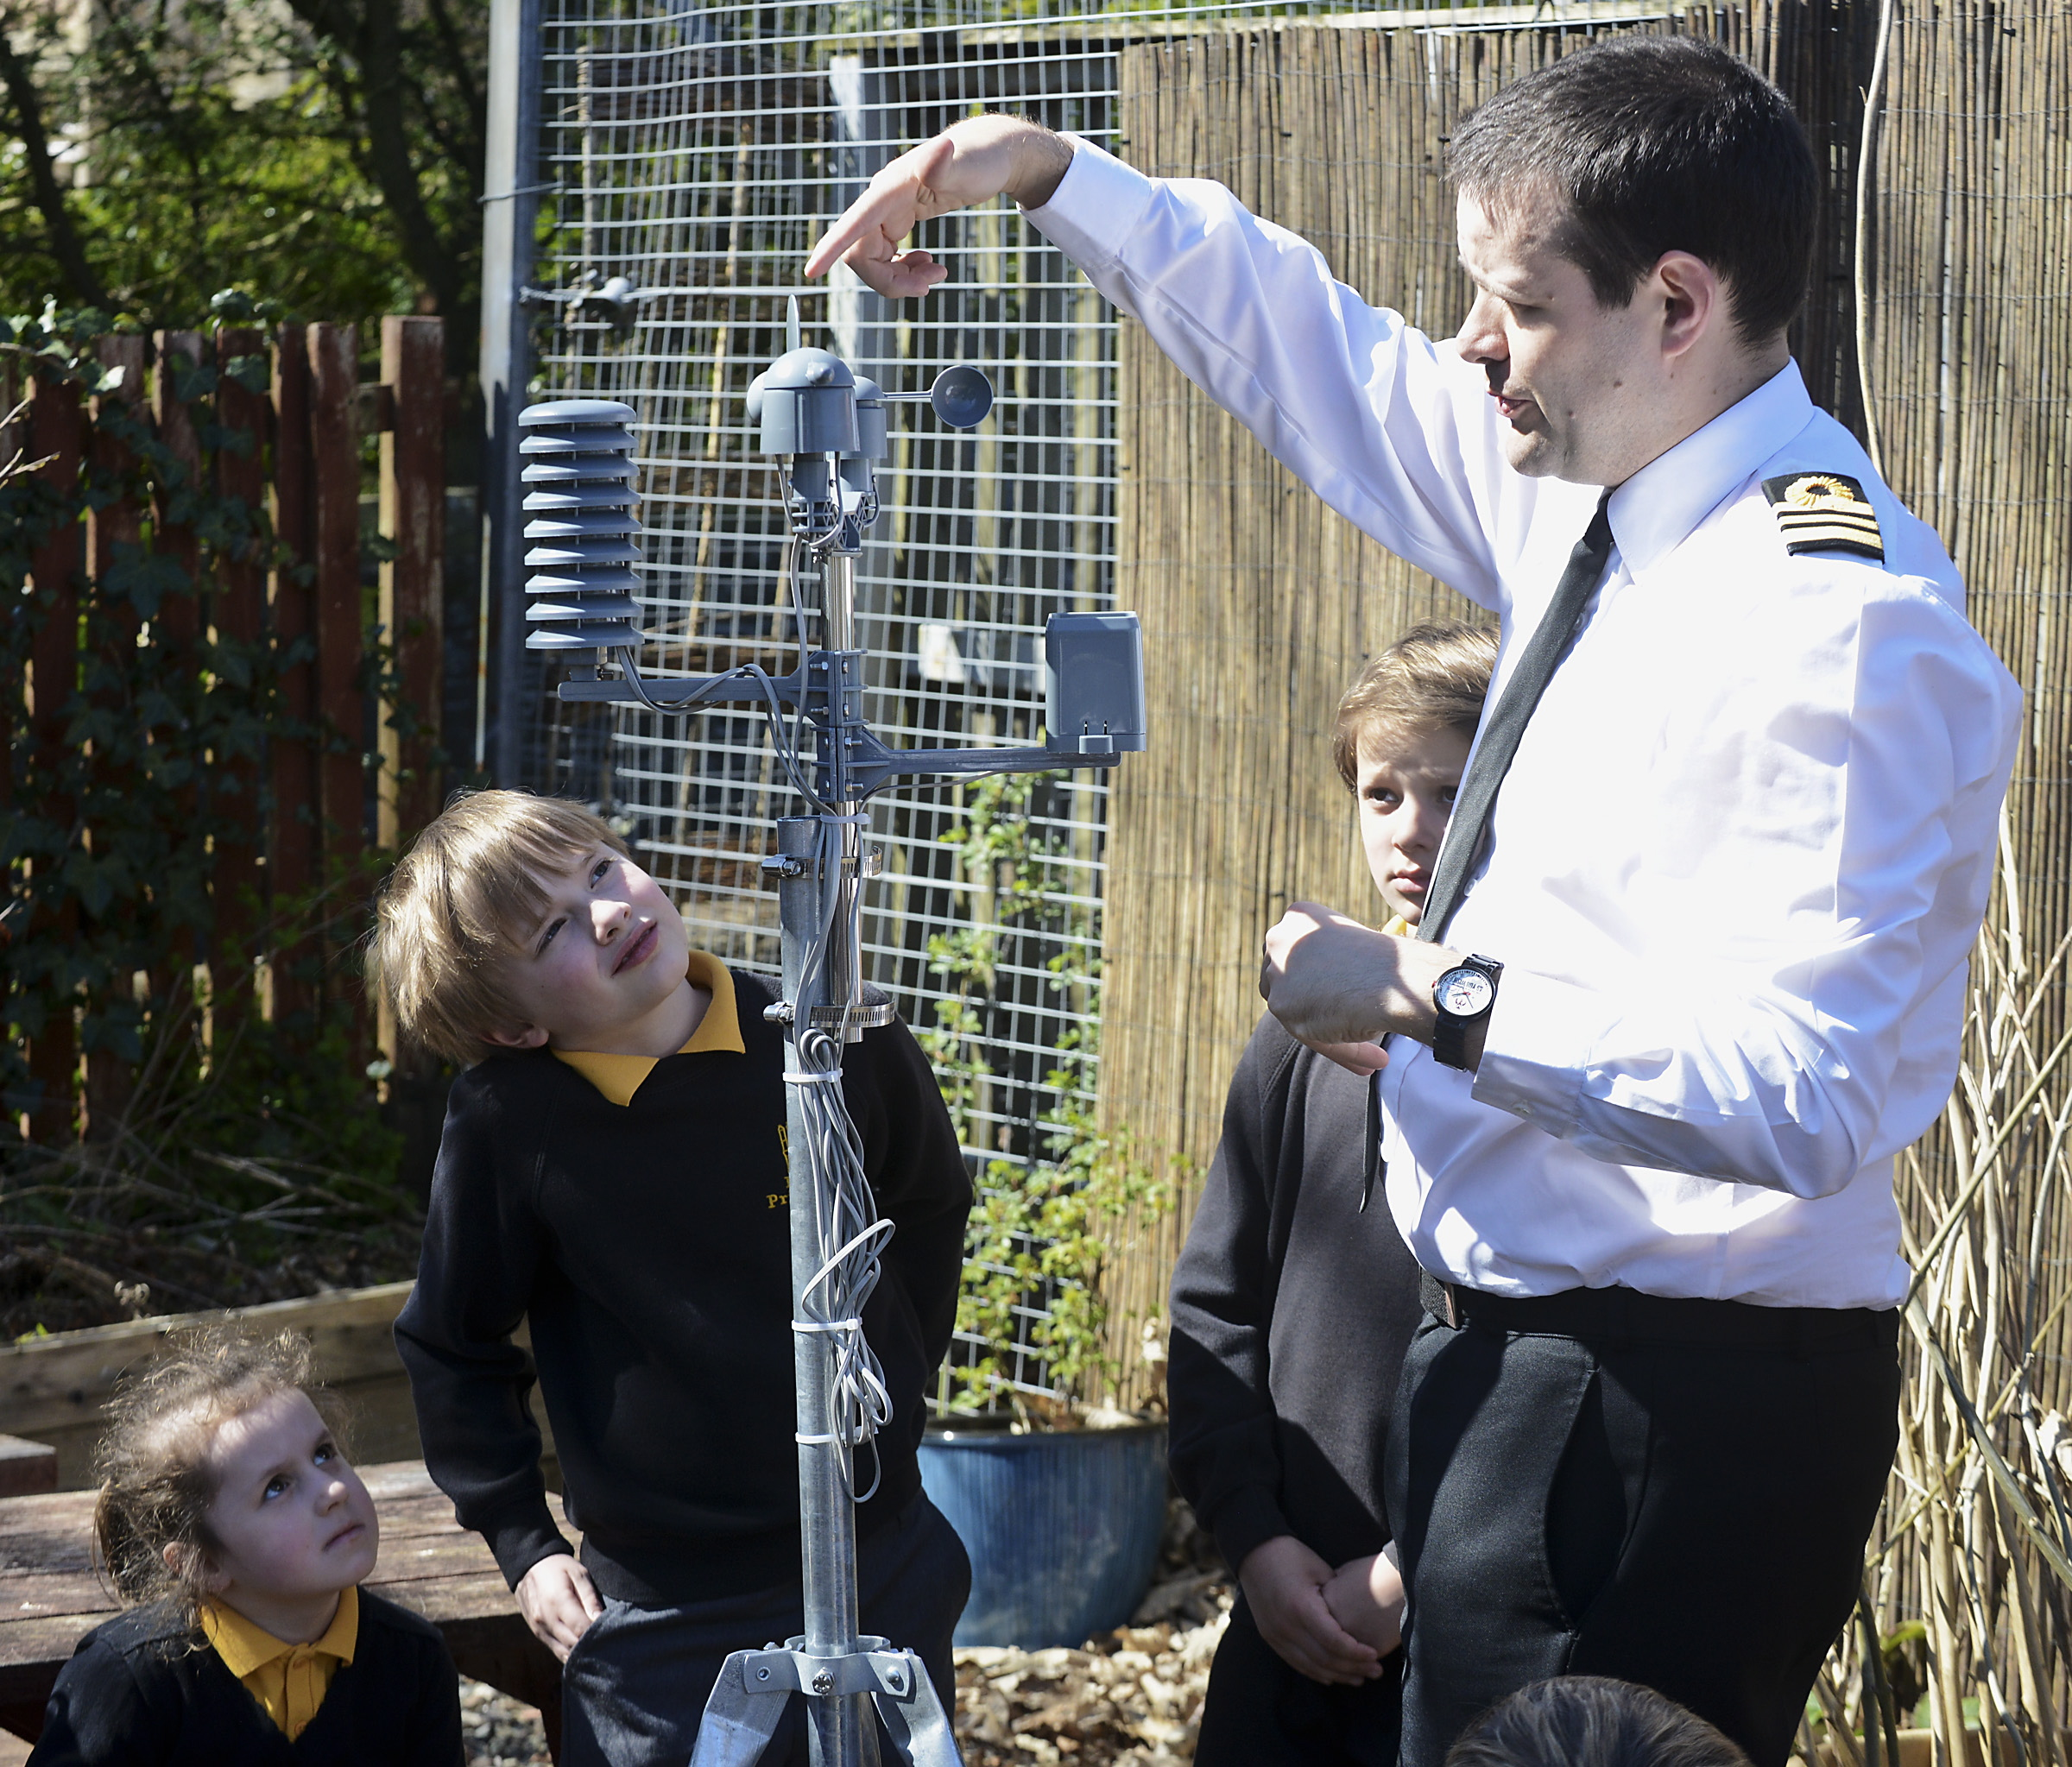 Weather station insalled at Rhu Primary School Lt Cdr Gordon Jones showing children of Rhu primary the weather station to be installed on the roof of the primary school. Consent forms held for all children by photographer.